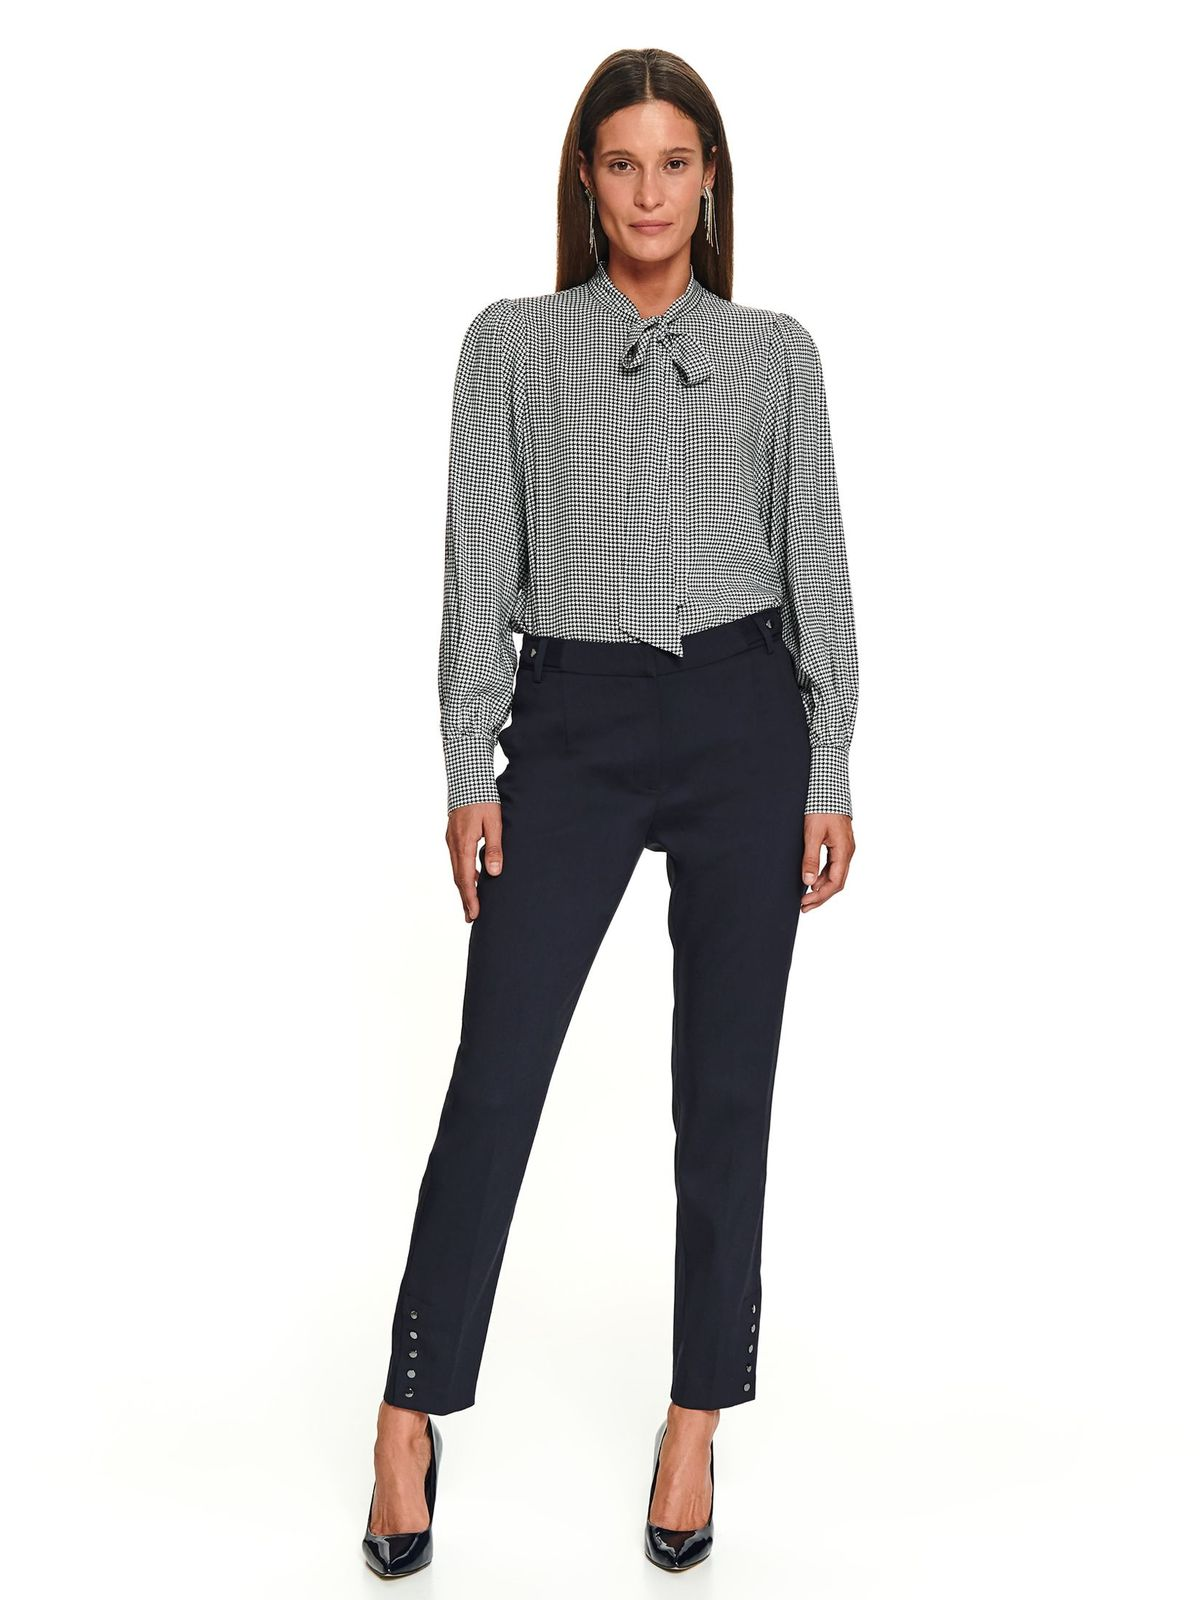 Black elegant long straight trousers with pockets